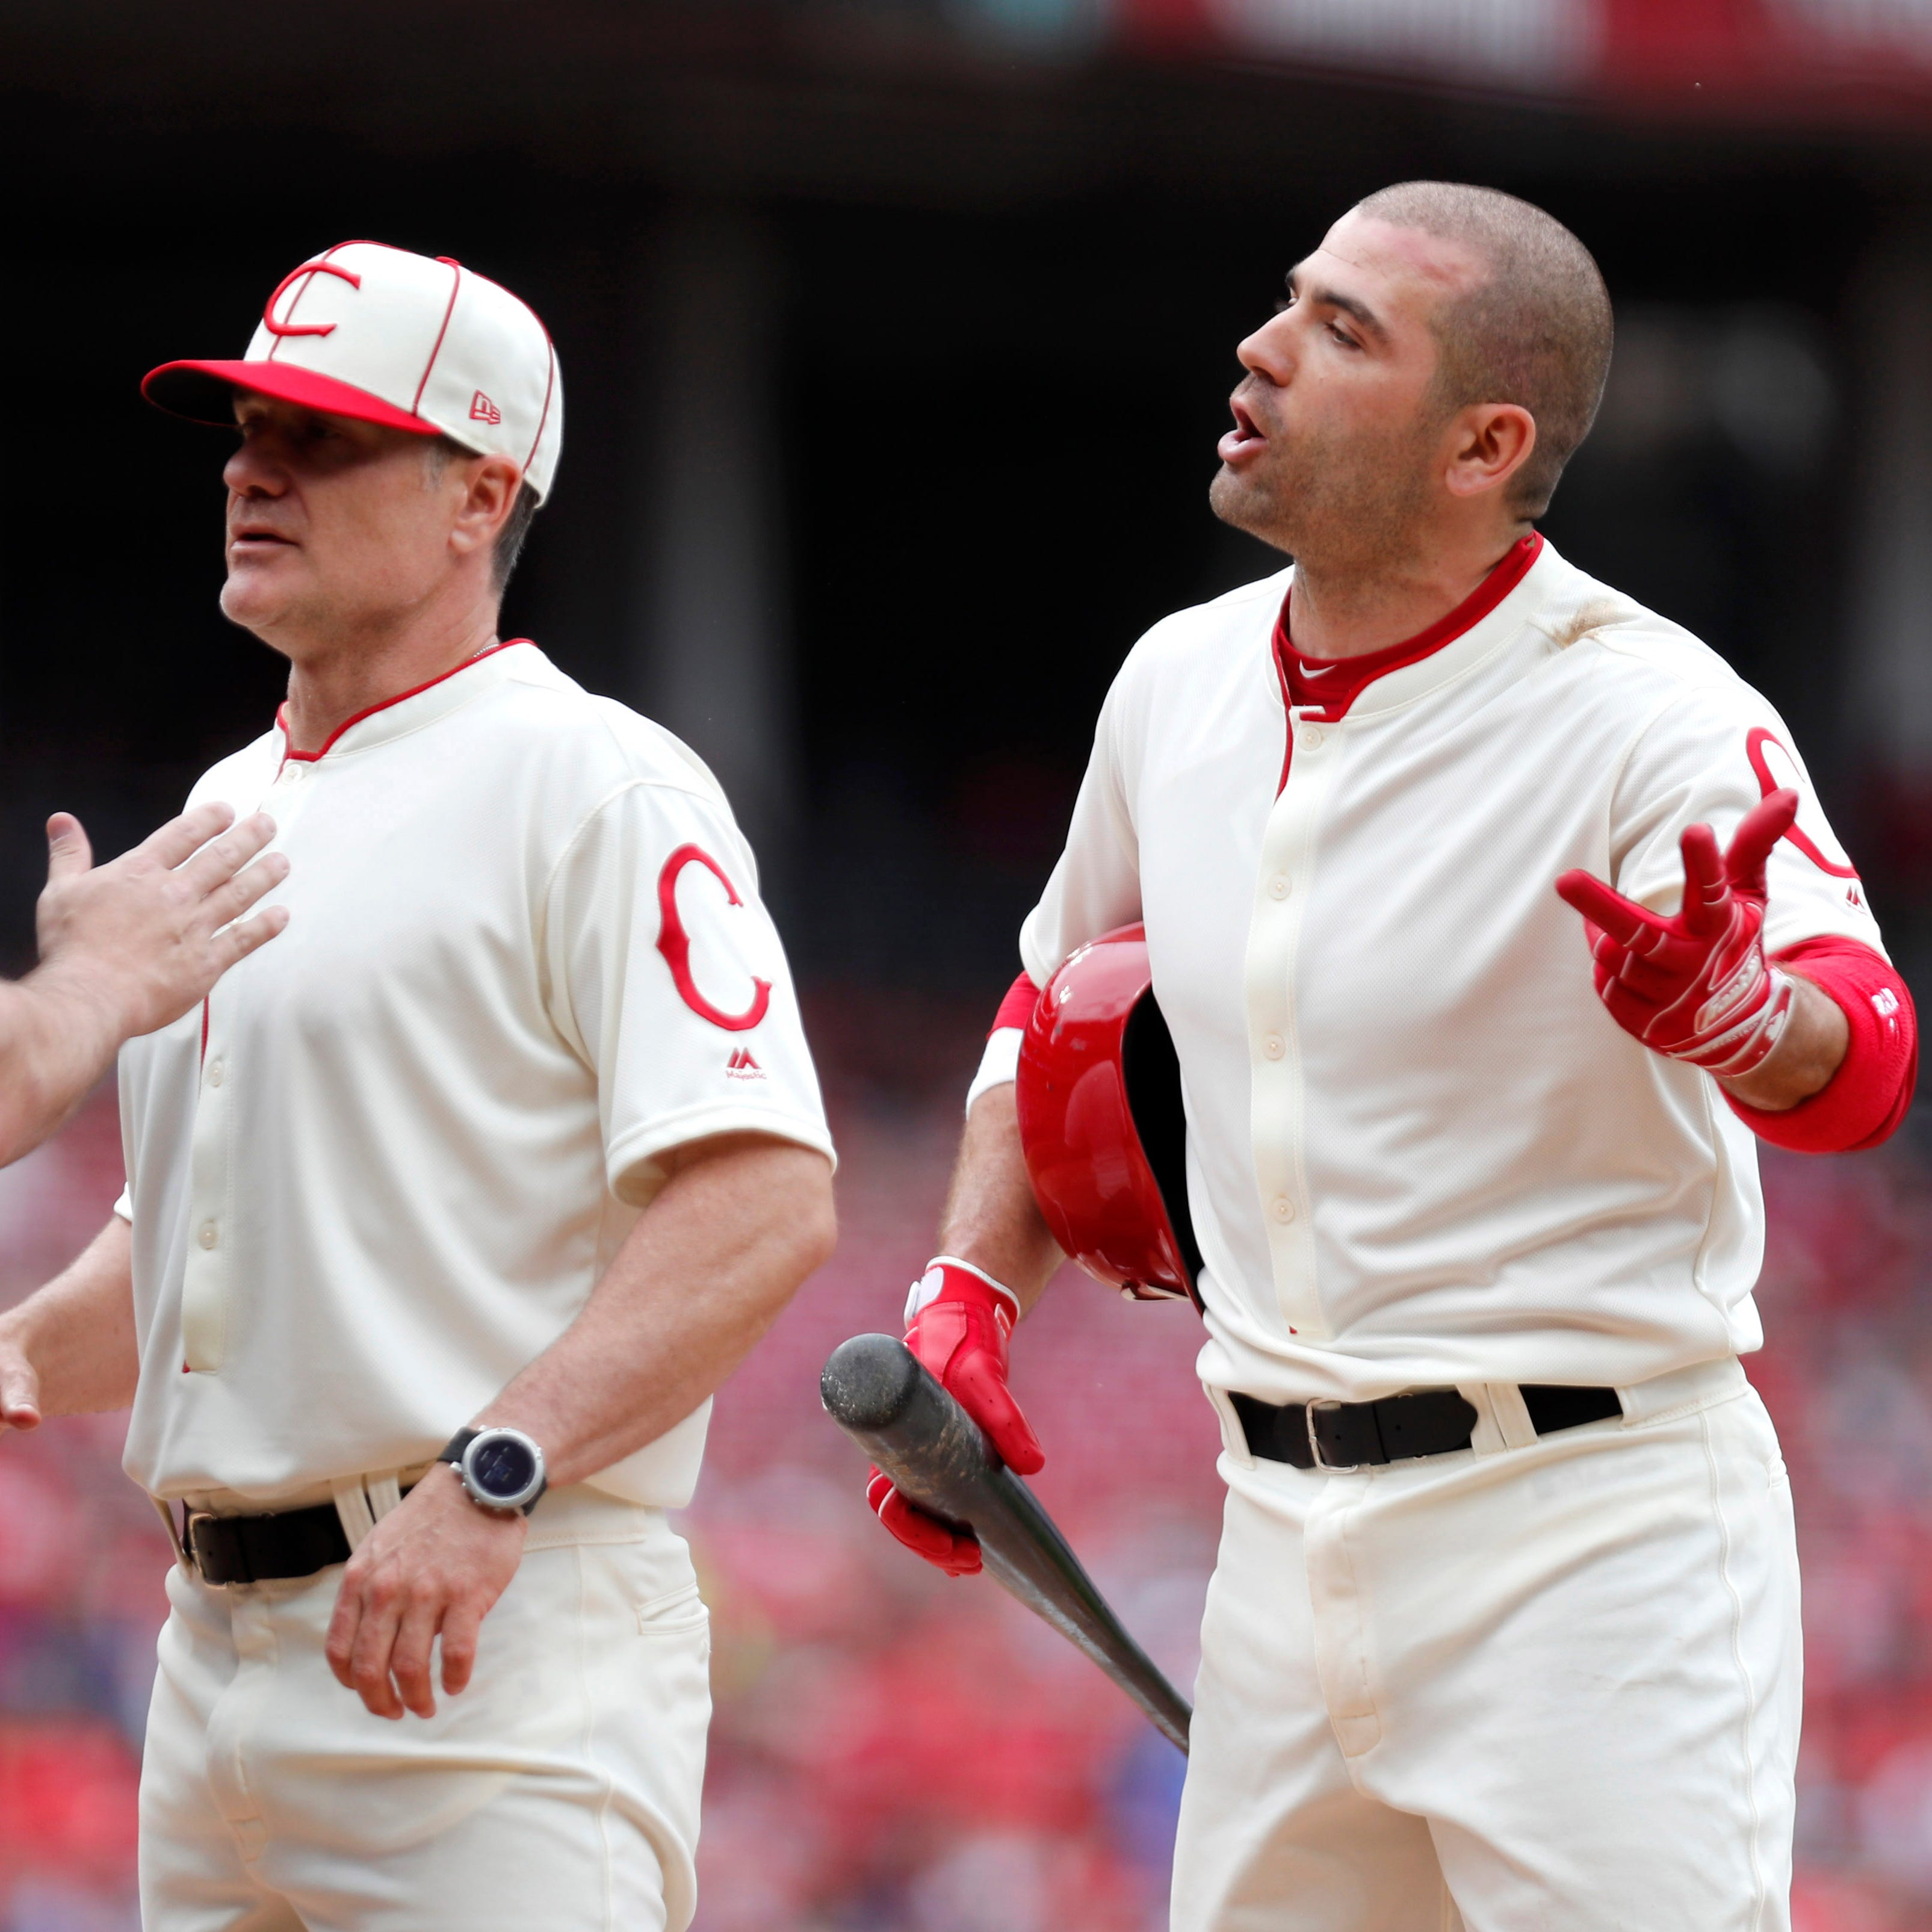 Cincinnati Reds fall 8-3 to Los Angeles Dodgers, miss a chance to build some momentum